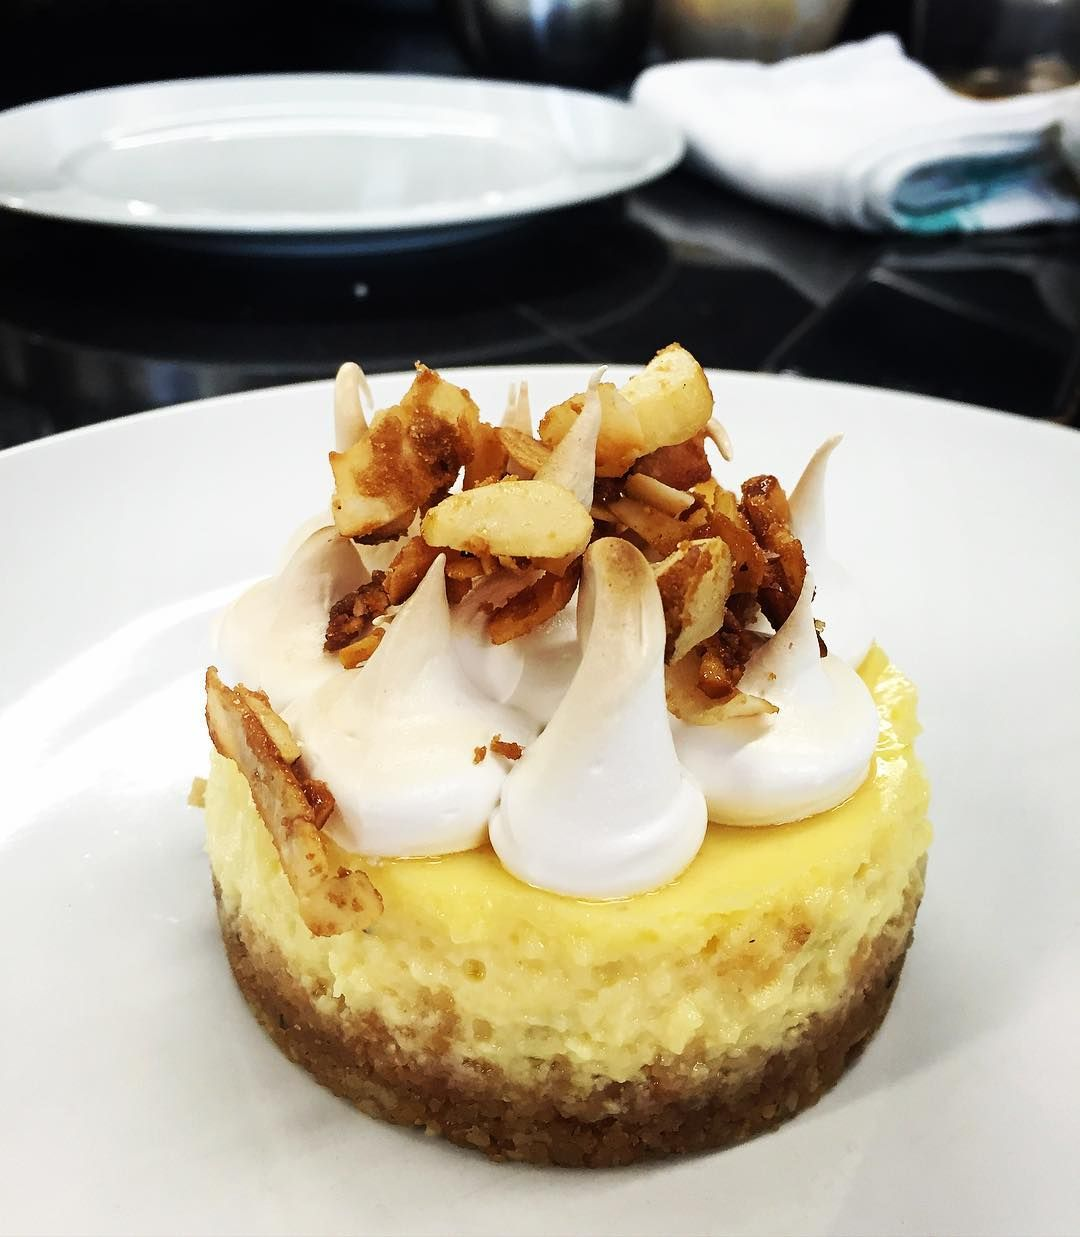 and lime cheesecake with Brazil nuts and coconut. It was a good day.